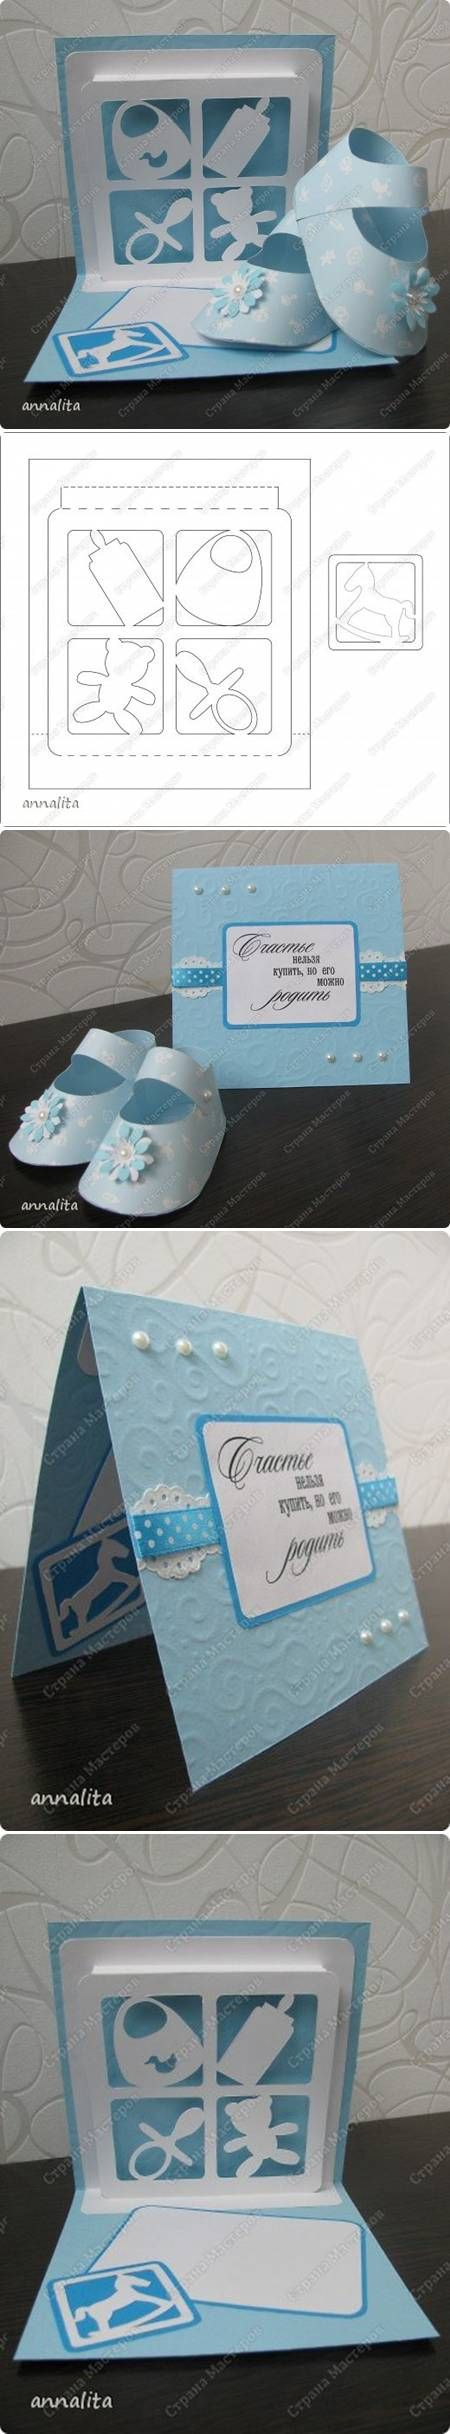 DIY Newborn Card Template